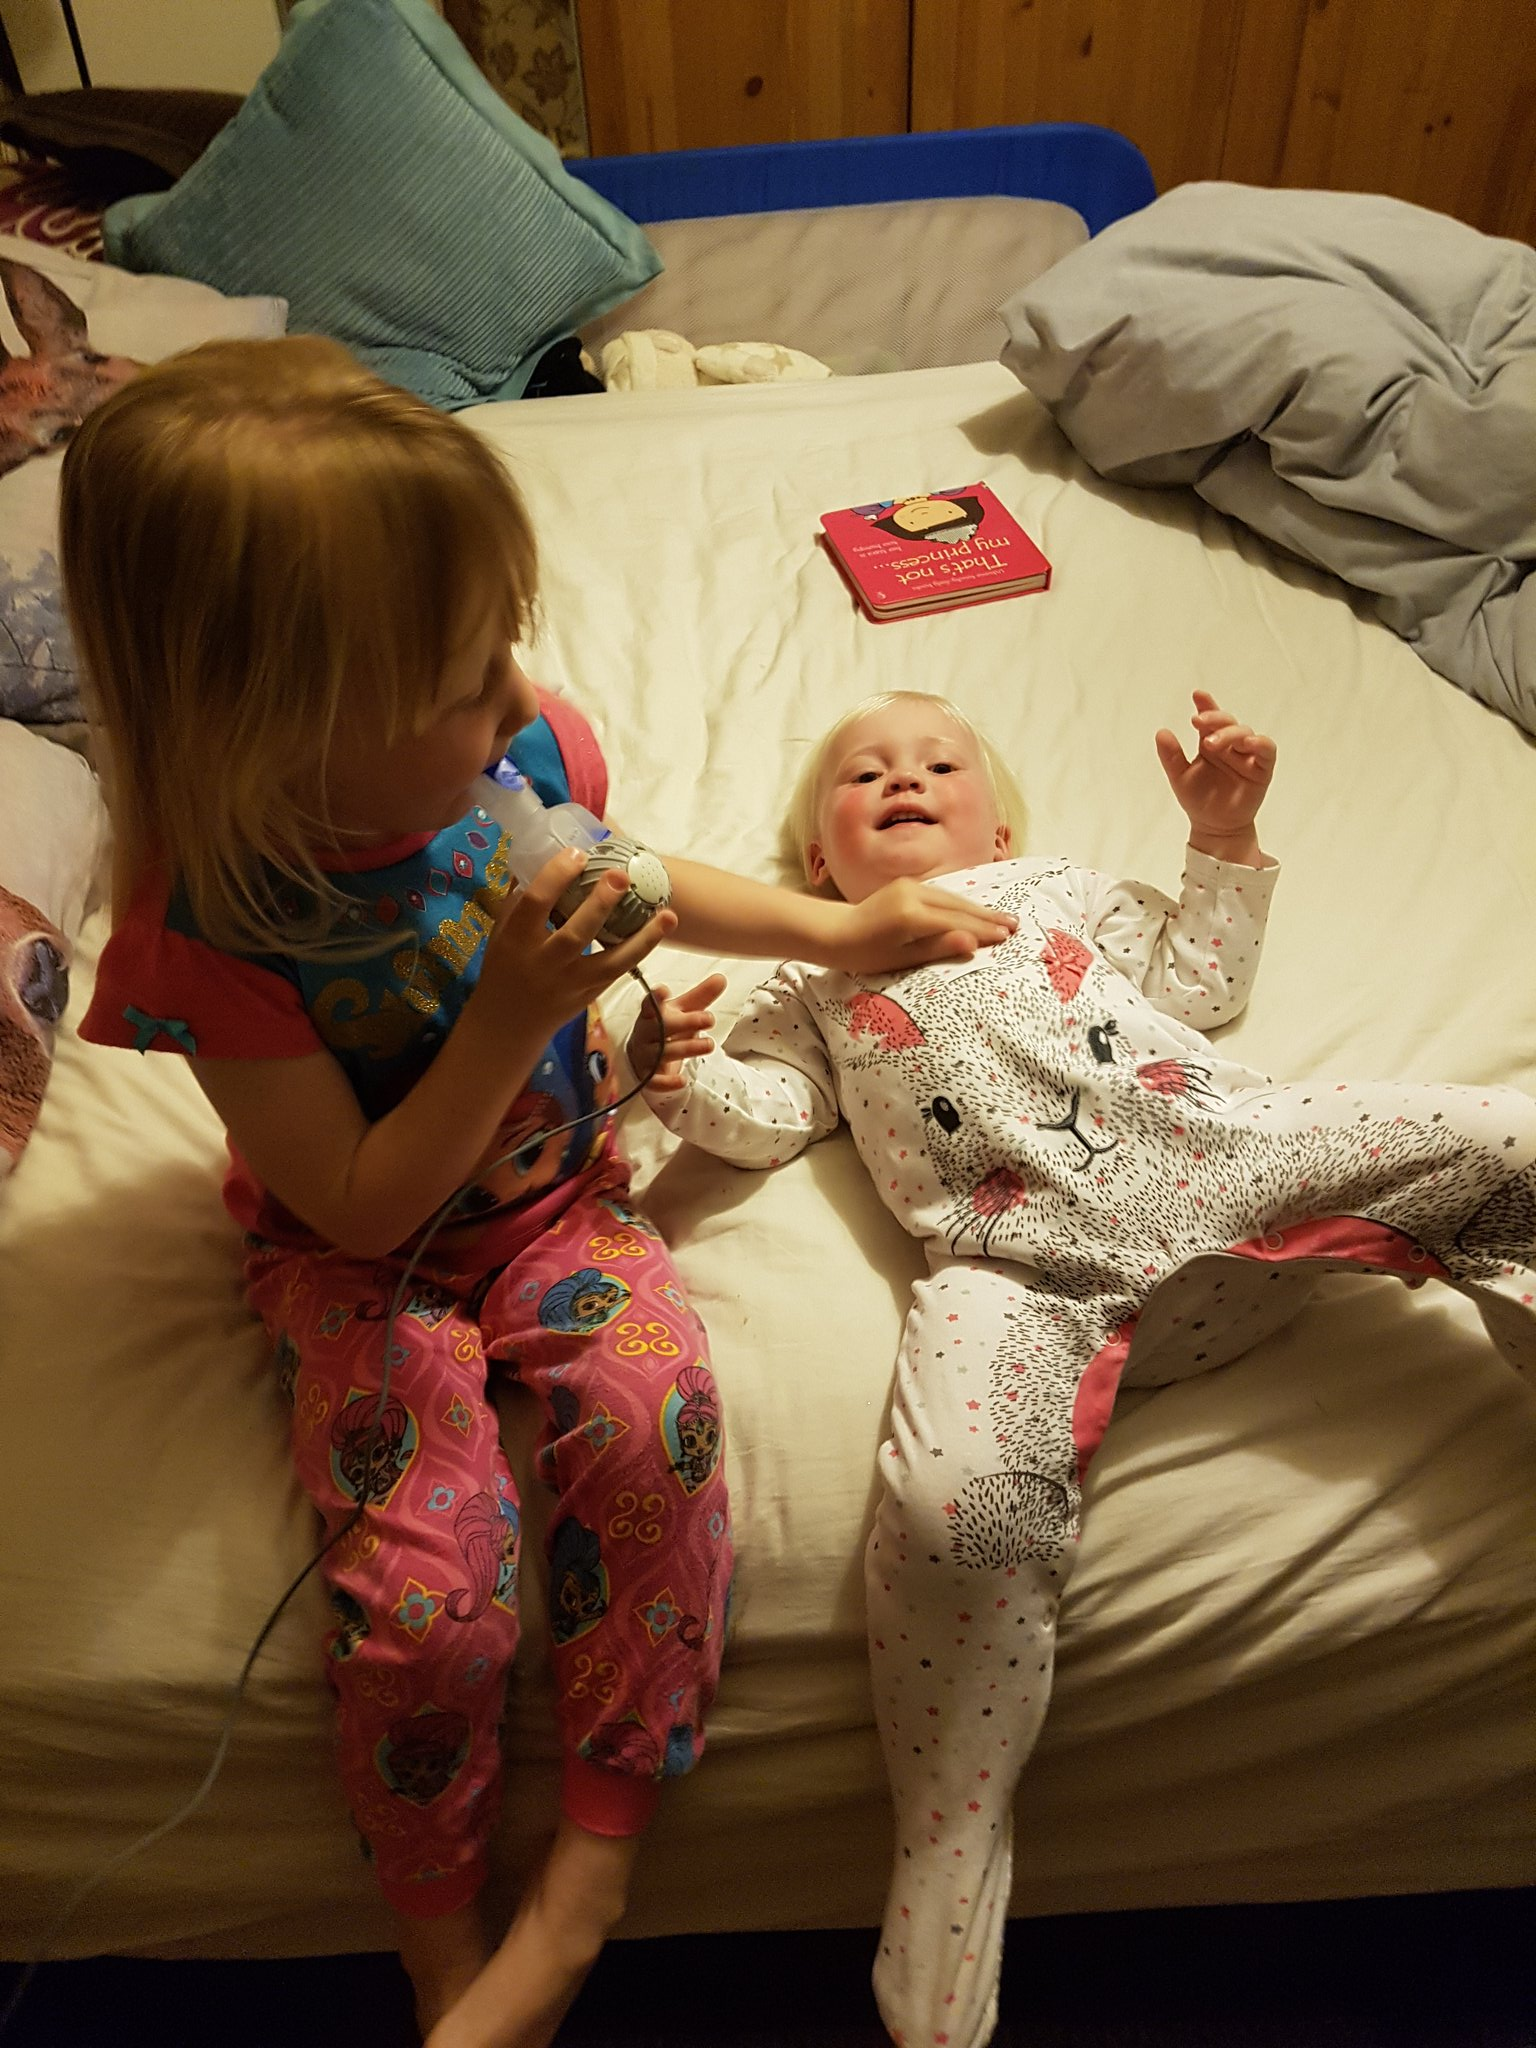 Please give my girls a chance to live to old age, without #OrkambiNow they won't be able to. #vertexpharma #ukneedsorkambi #cftrust https://t.co/tBd27SaABL